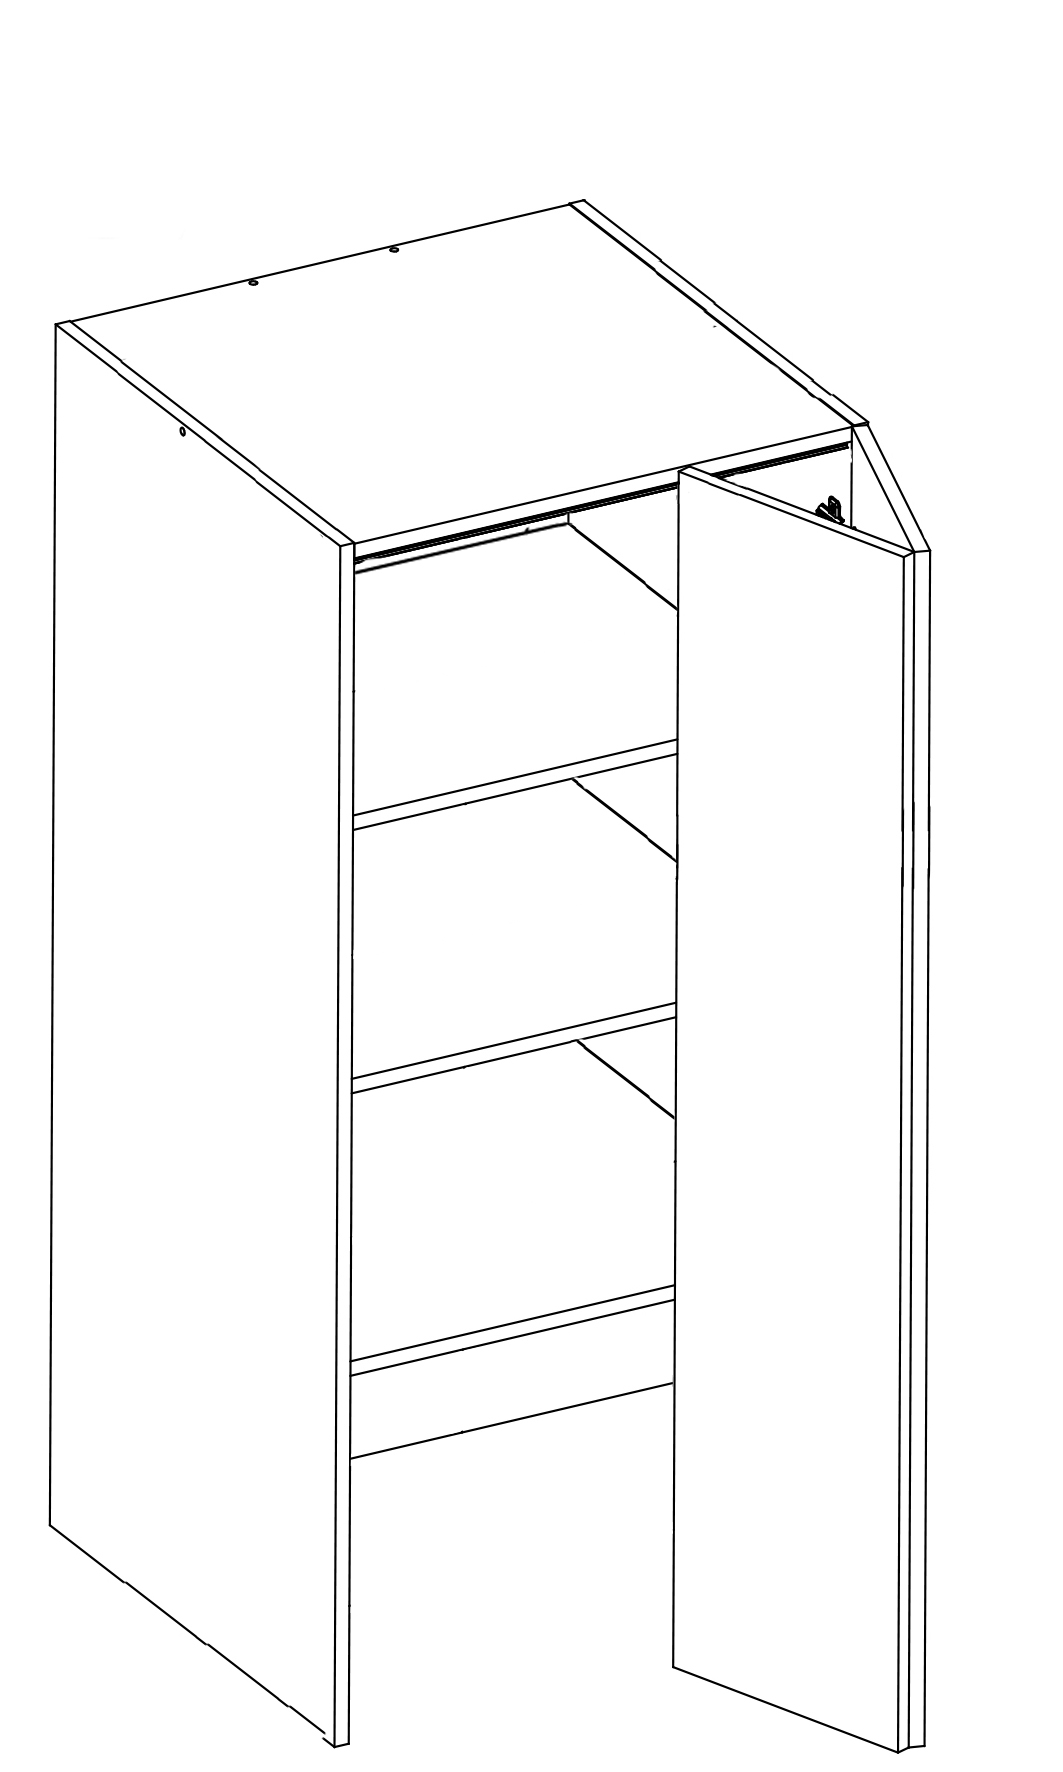 Body Diagram of On-Bench Pantry 580 Deep W60/132/60 for kitchen